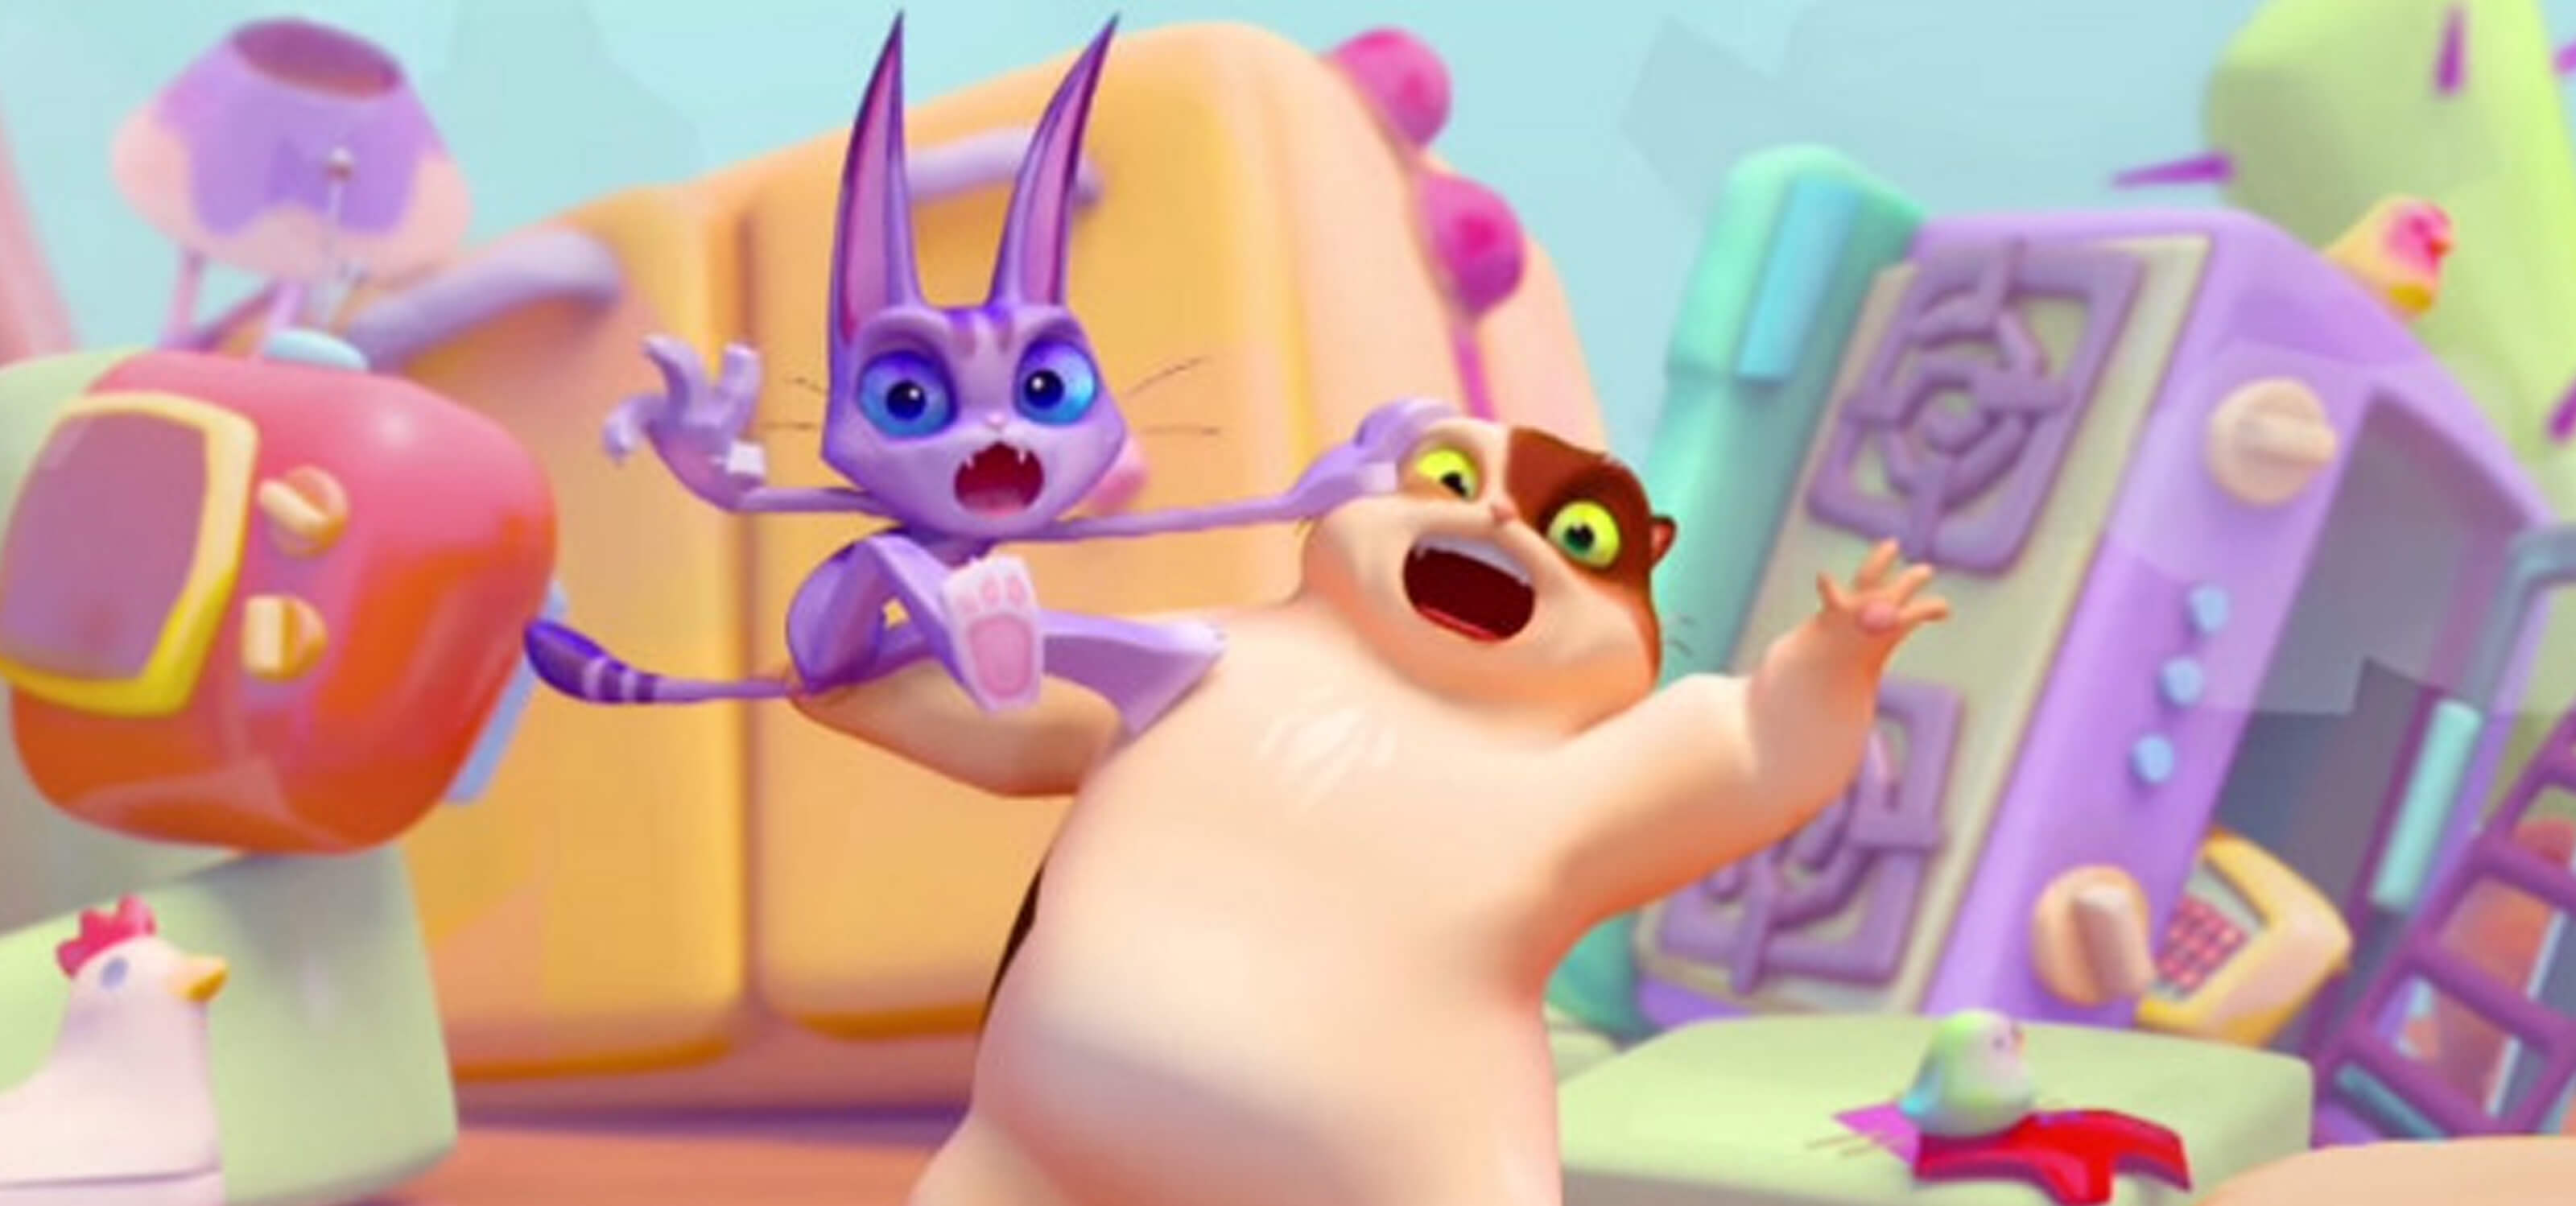 3D animated scene of a purple cat and beige cat surrounded by a child's colorful toys